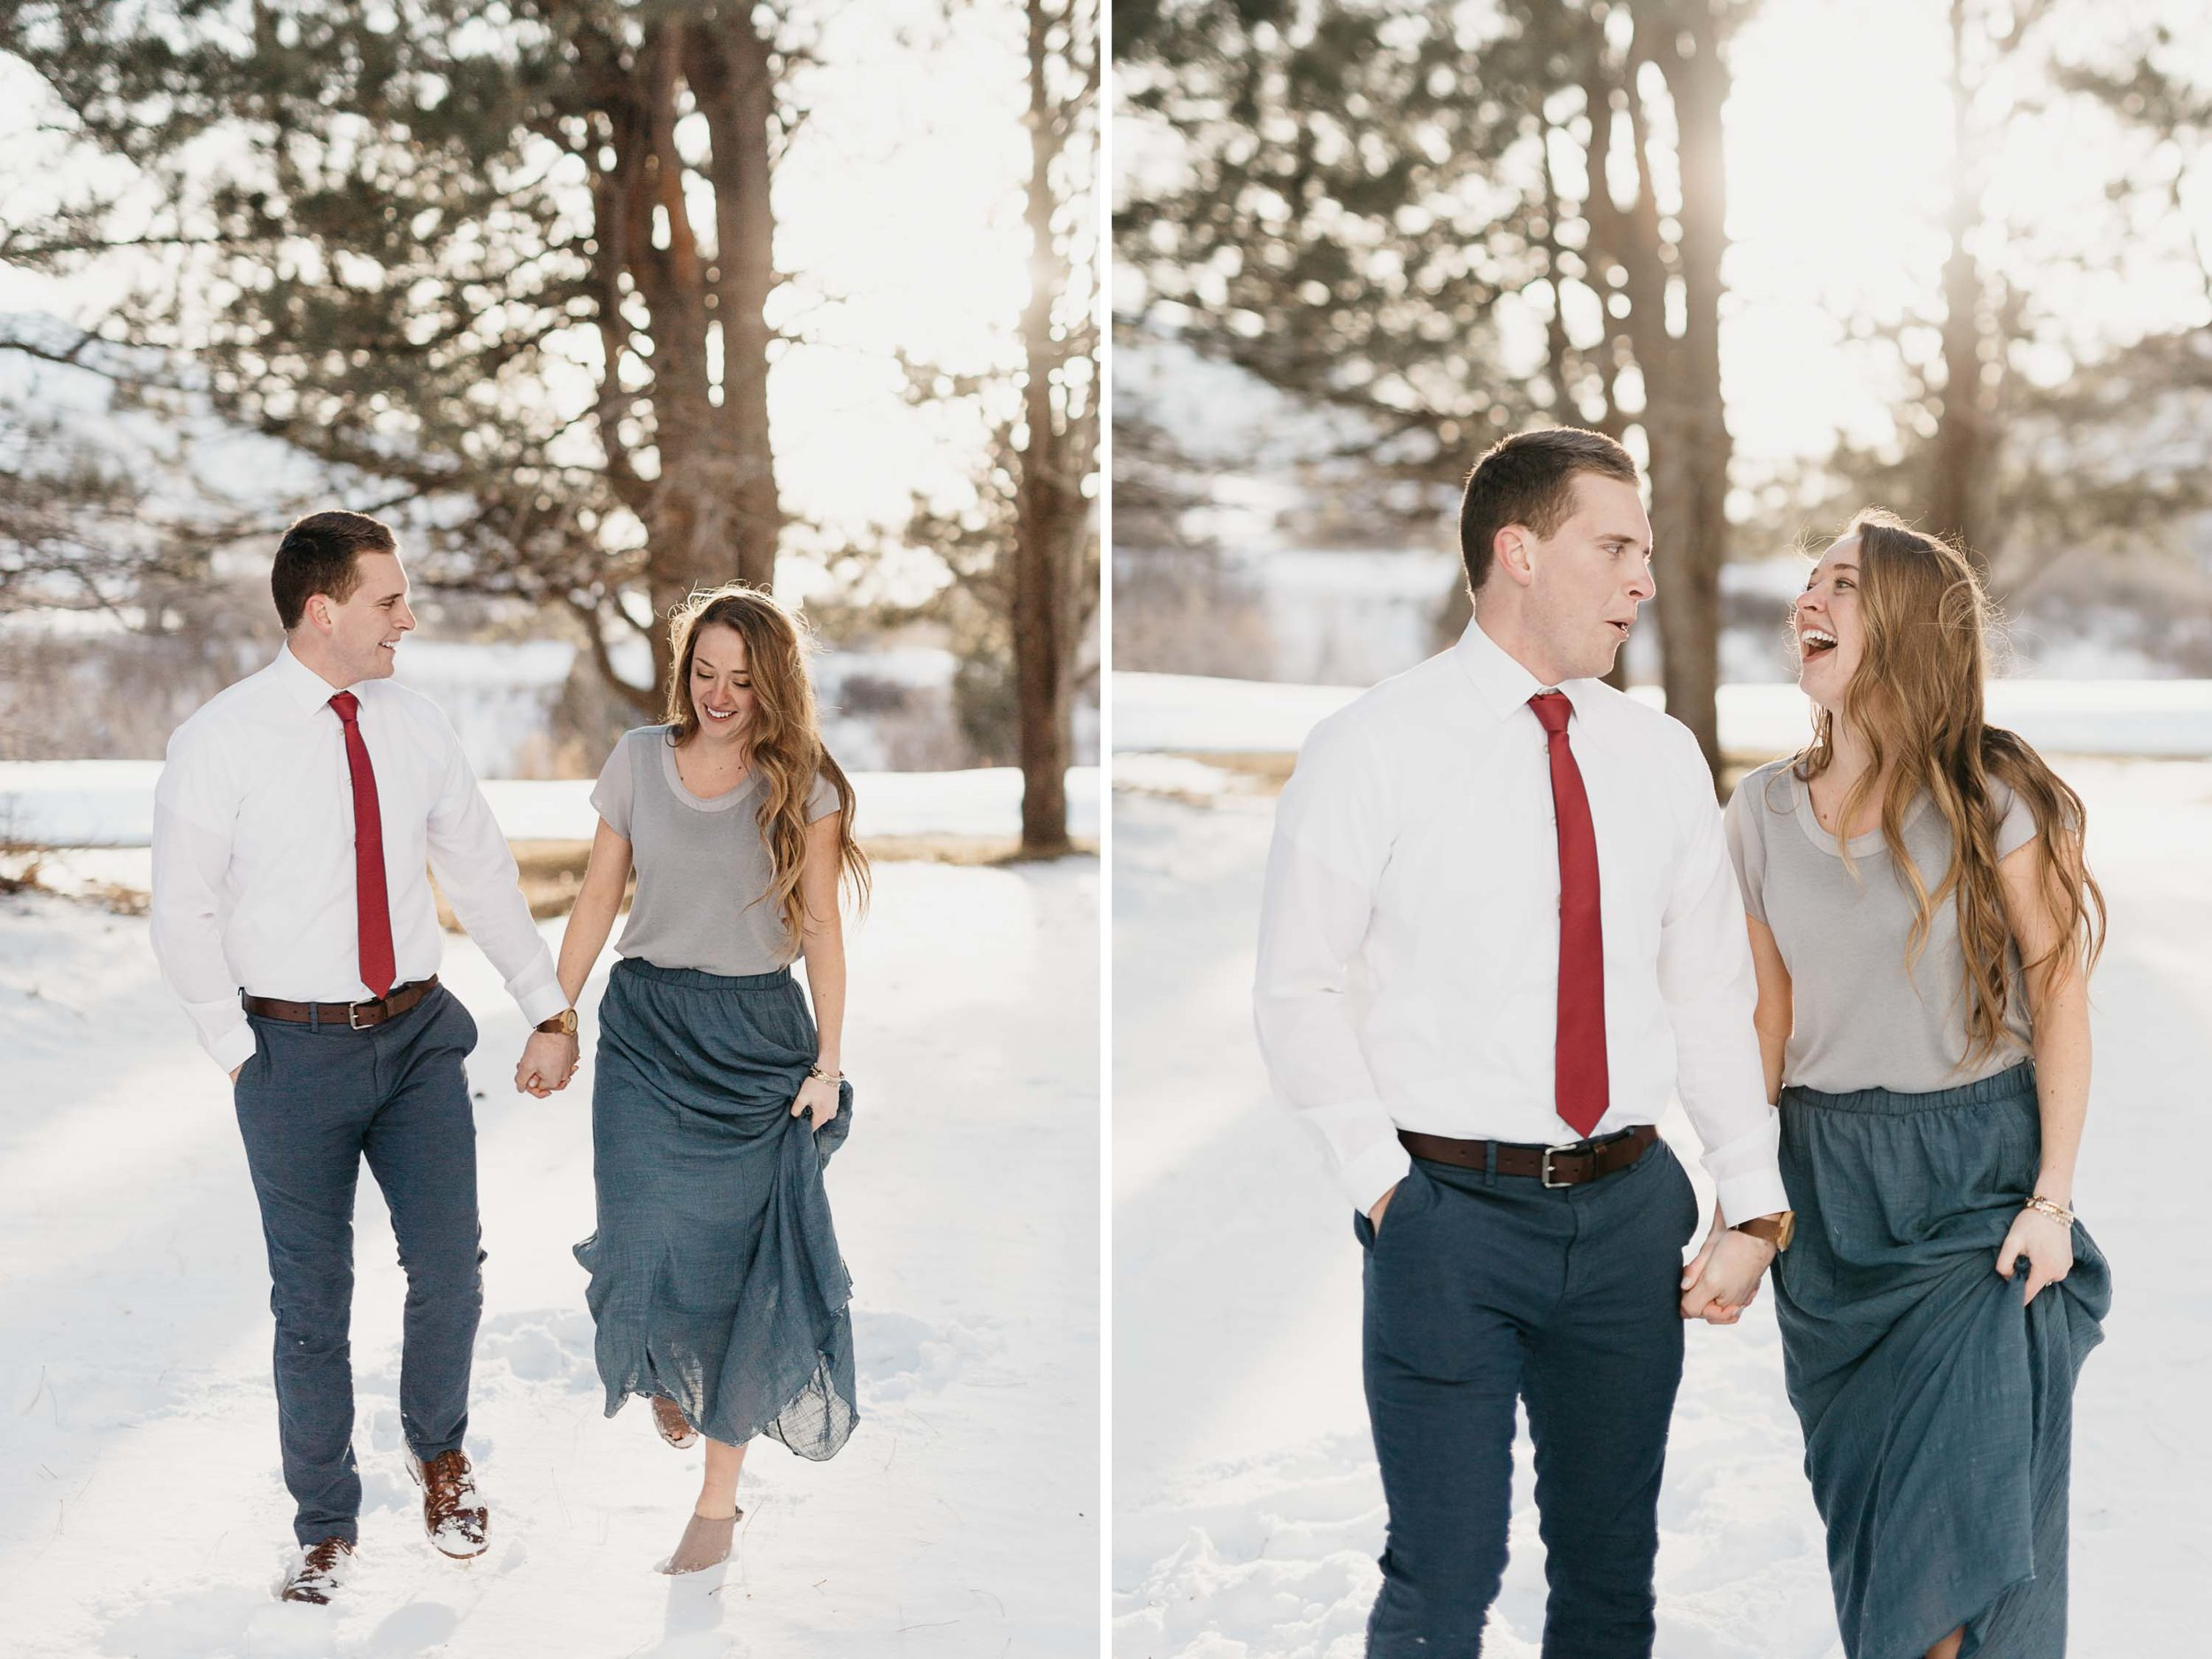 Utah-Wedding-Photographer-06.jpg